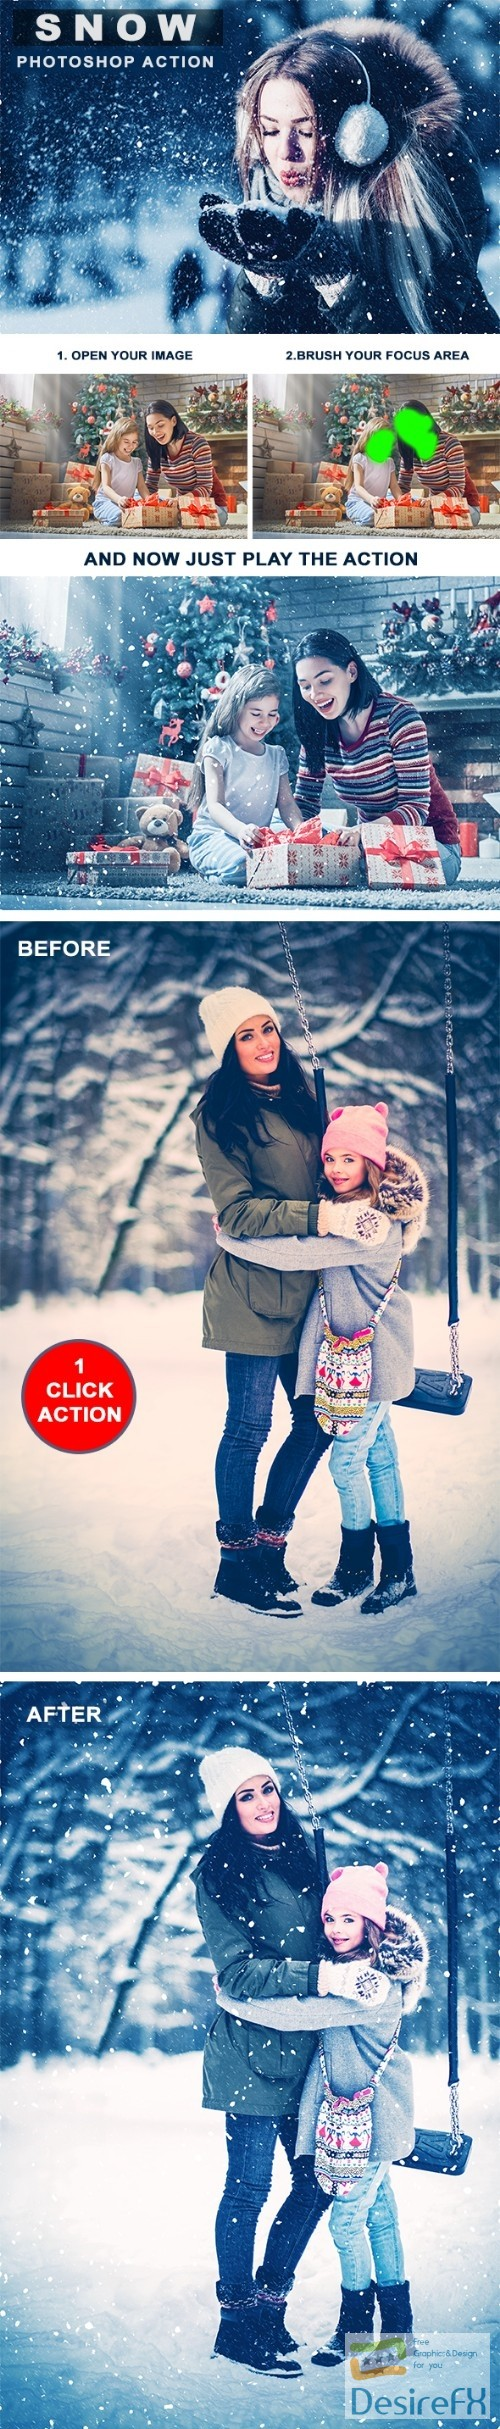 actions-atn - Snow Photoshop Action 22846485